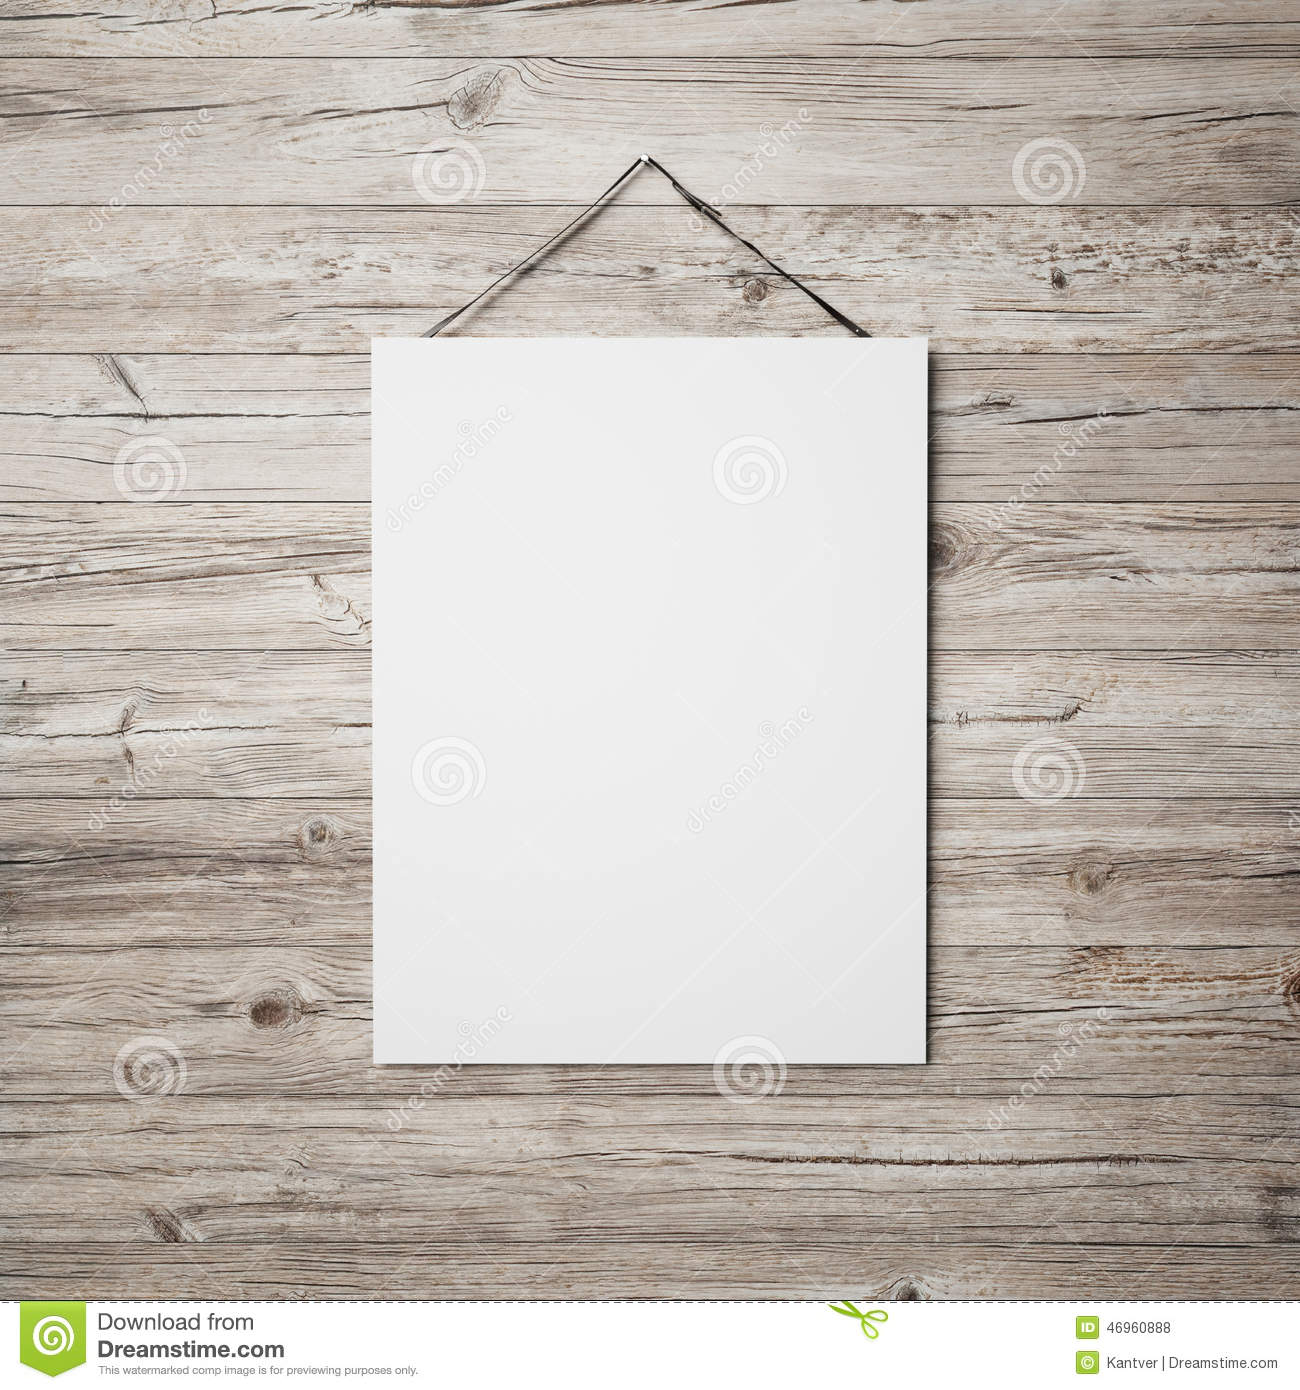 White blank poster hanging on leather belt on wood background